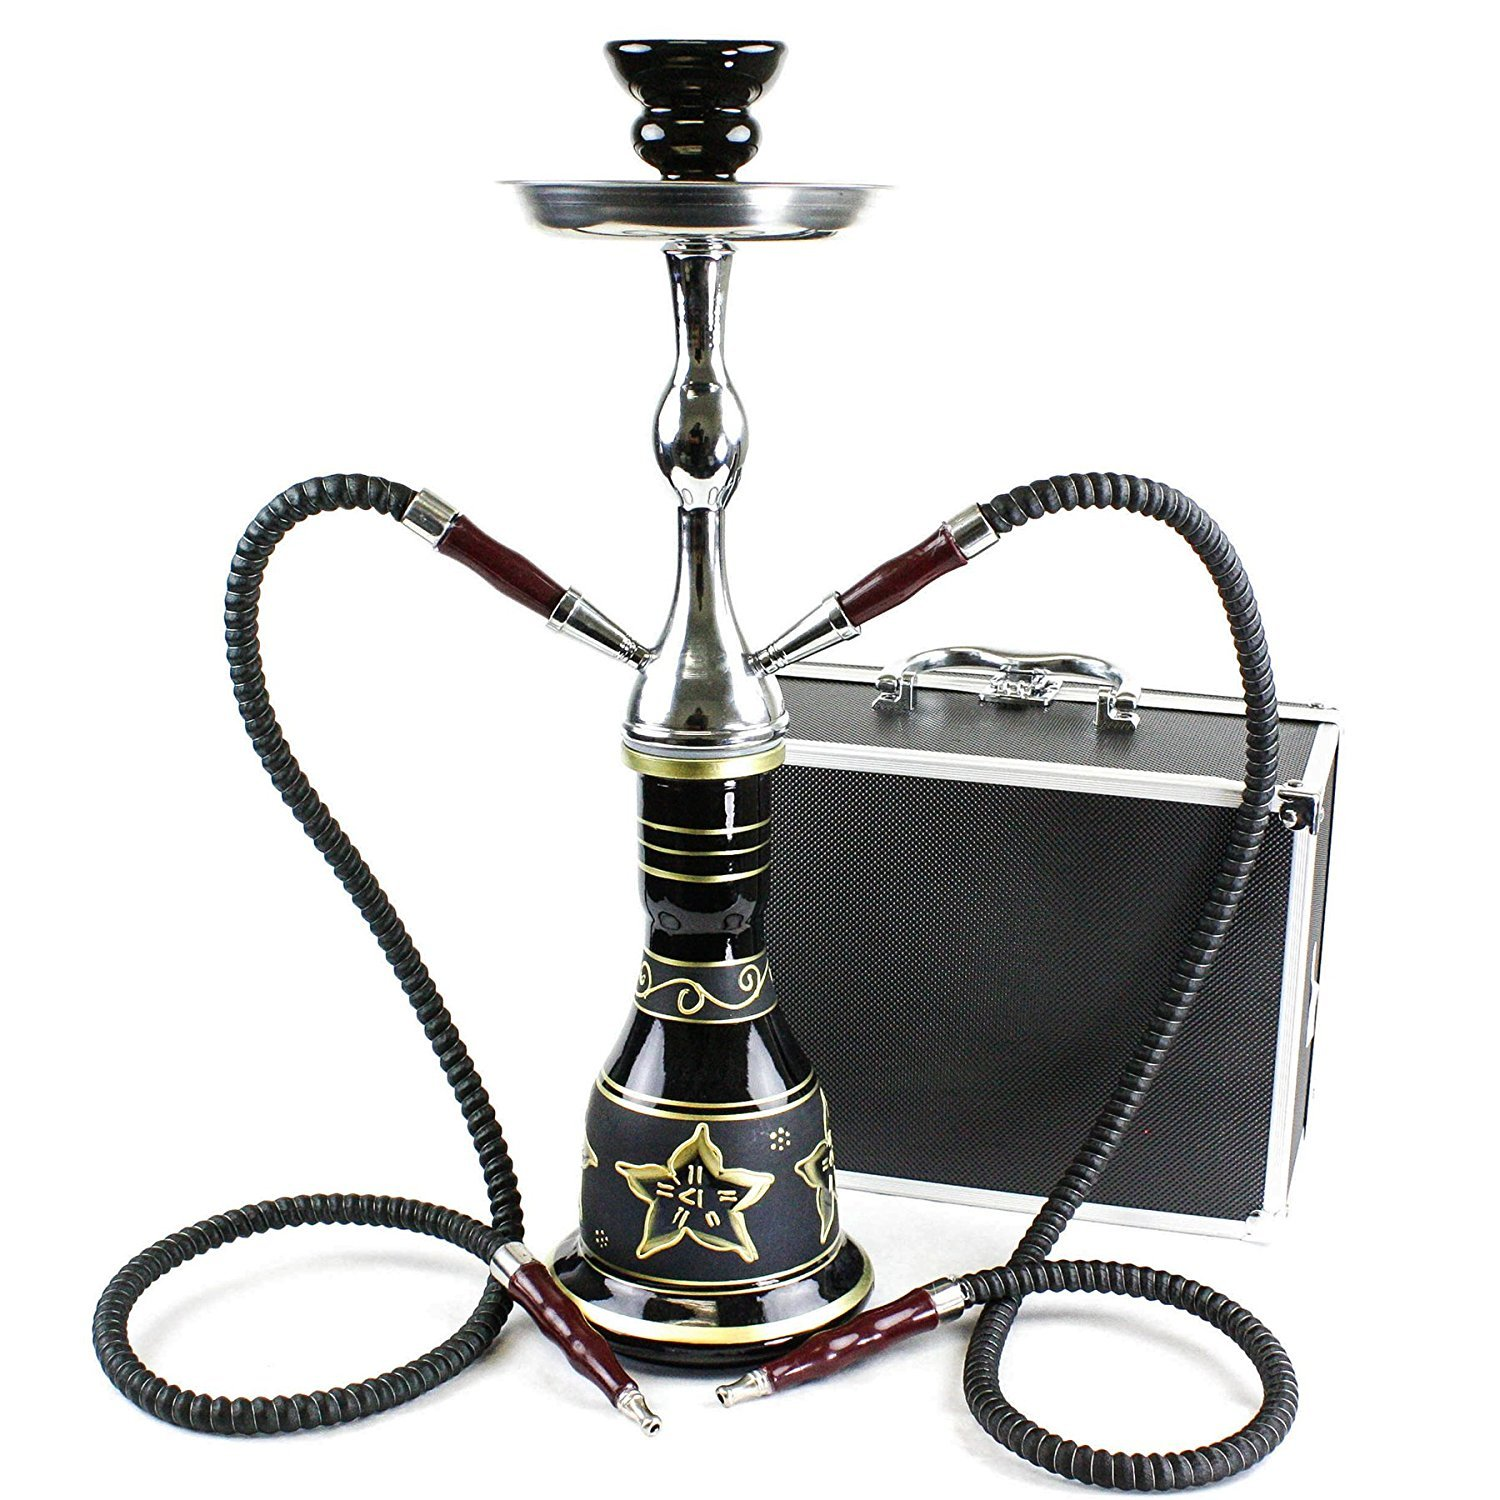 GSTAR Convertible Series: 18'' 1 or 2 Hose Hookah Complete Set w/ Case - Majestic Glass Vase - (Tuscany Black)